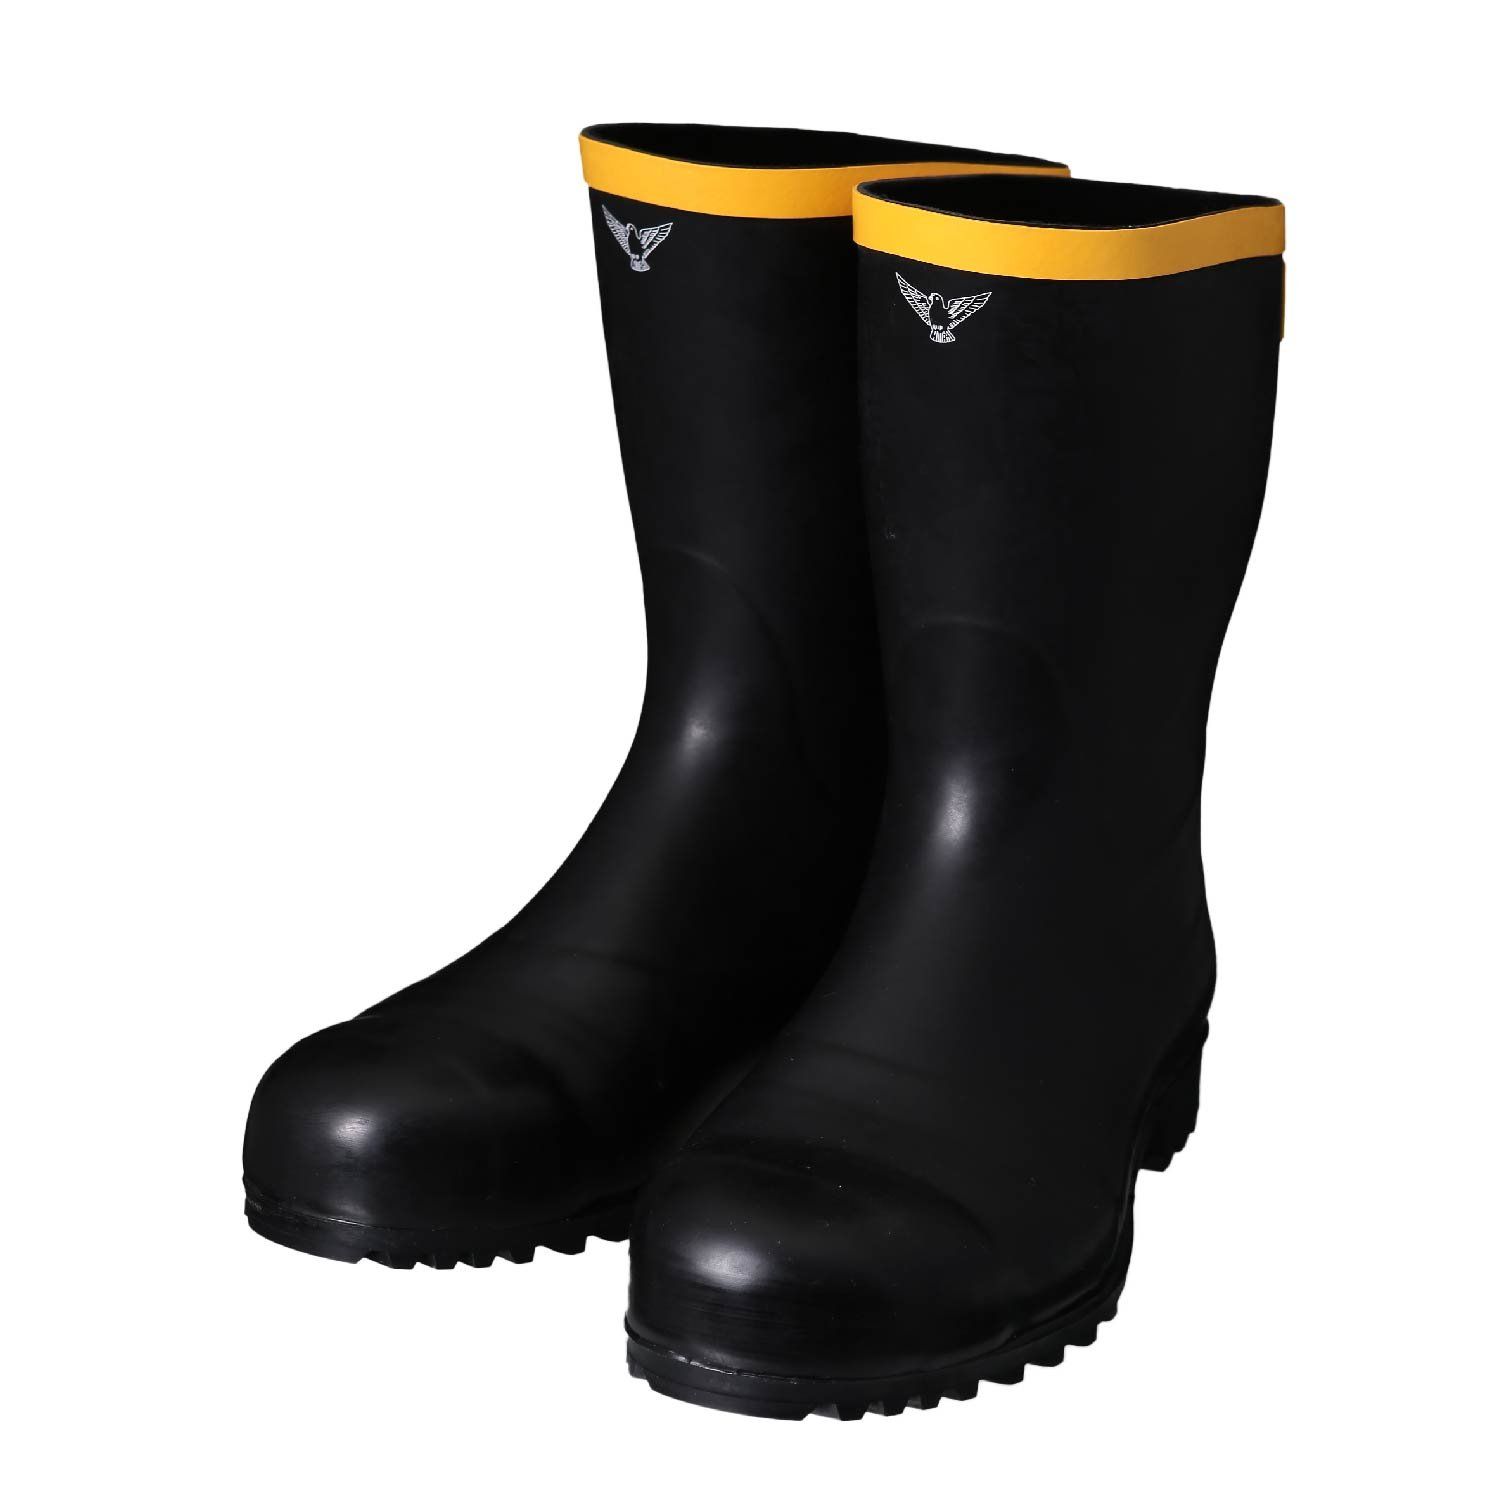 Antistatic Boots AE011 Antistatic Safety Boots / 静電気帯電防??靴 AE011 安全静電?